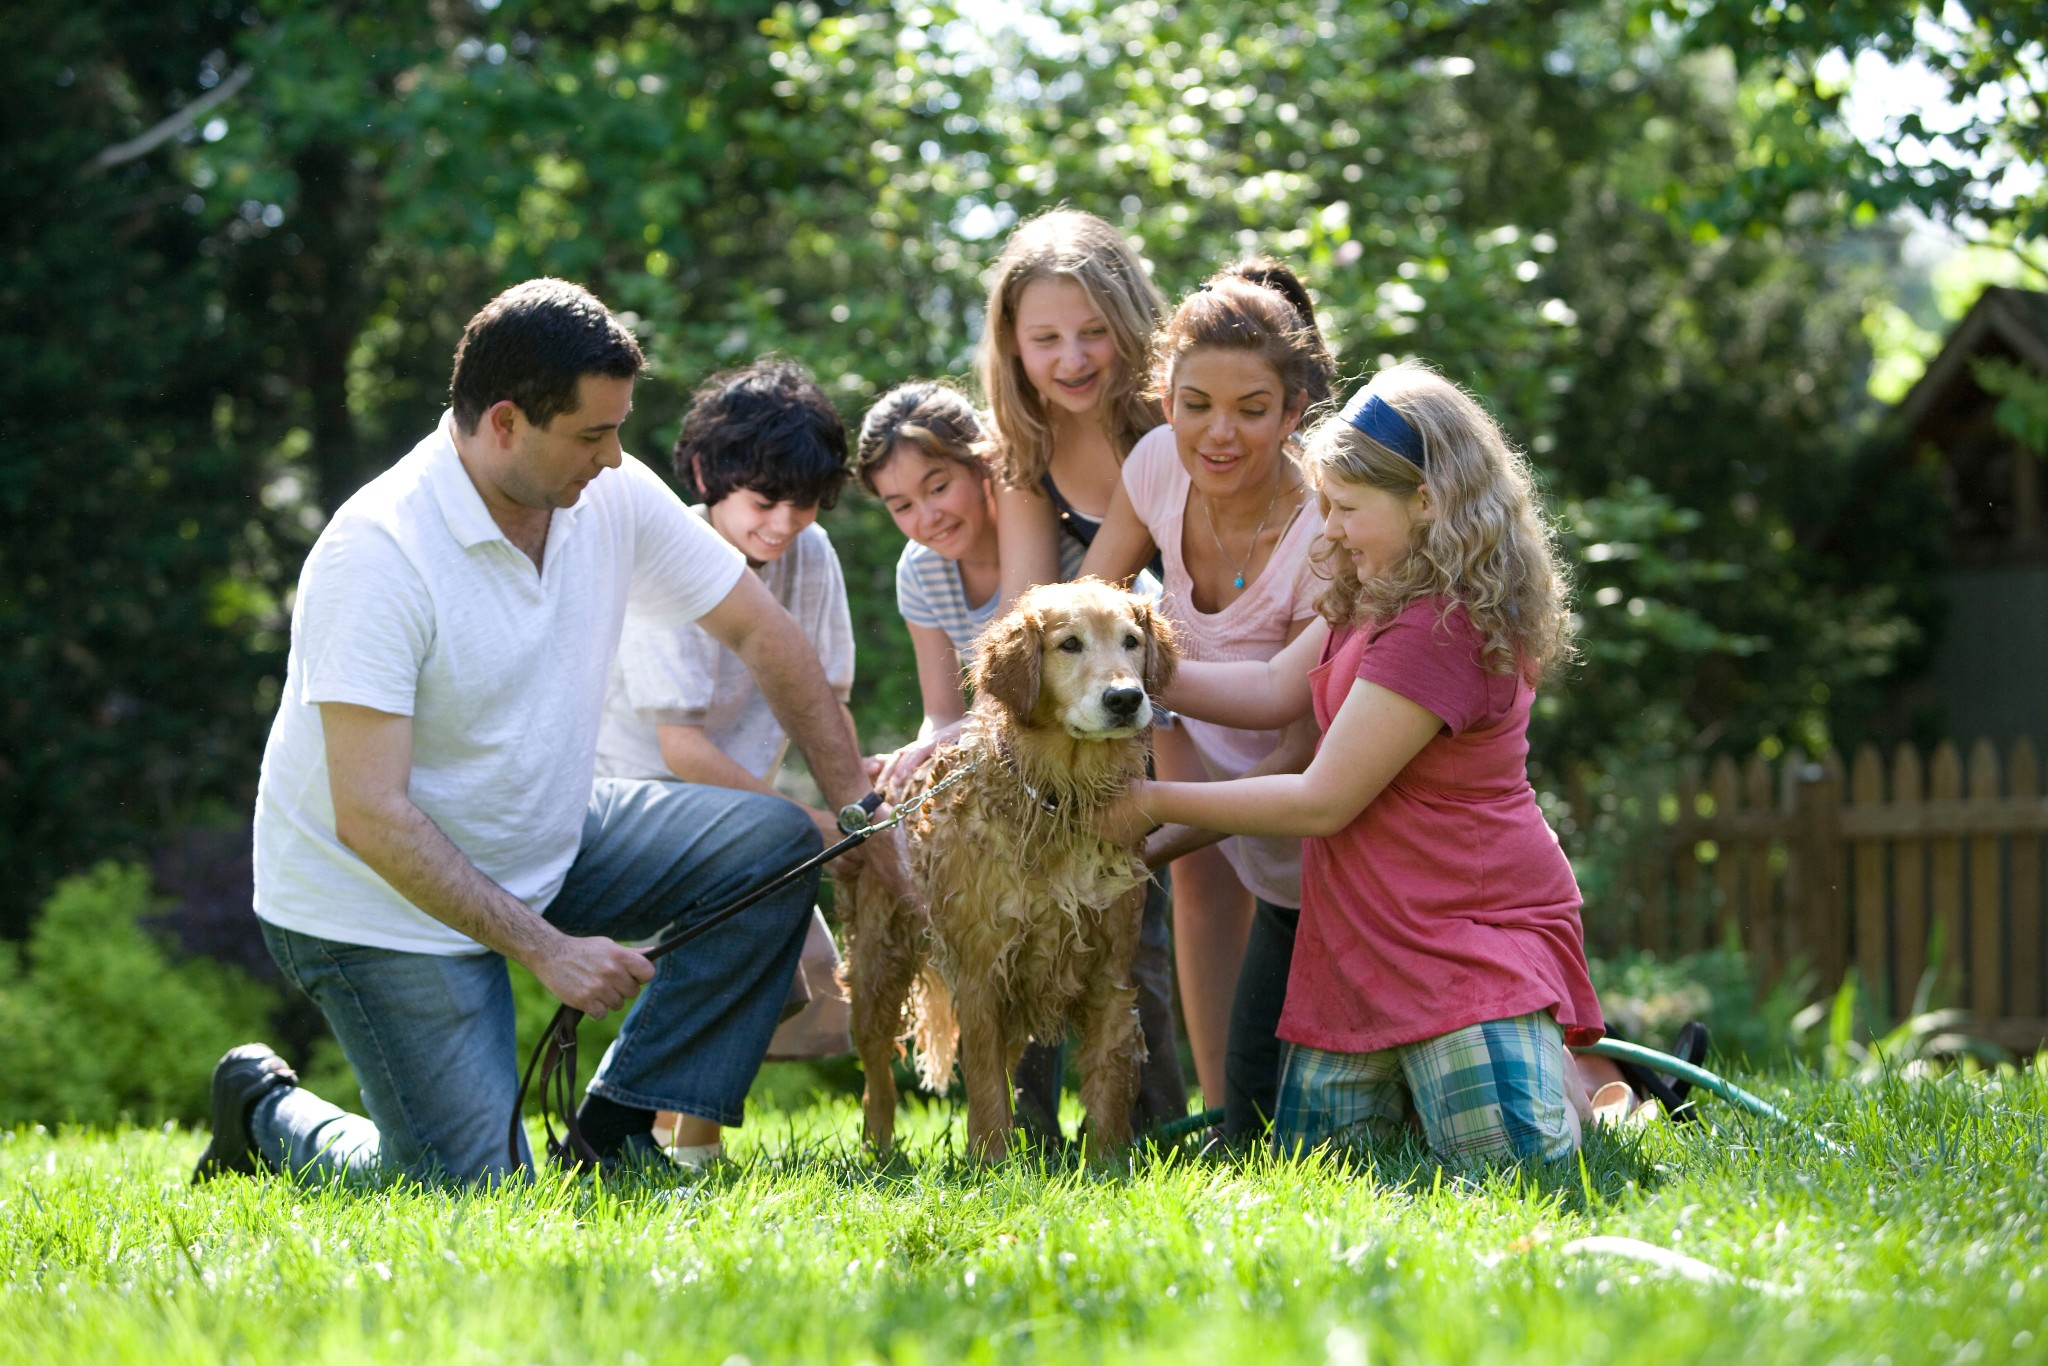 family-in-yard-with-dog